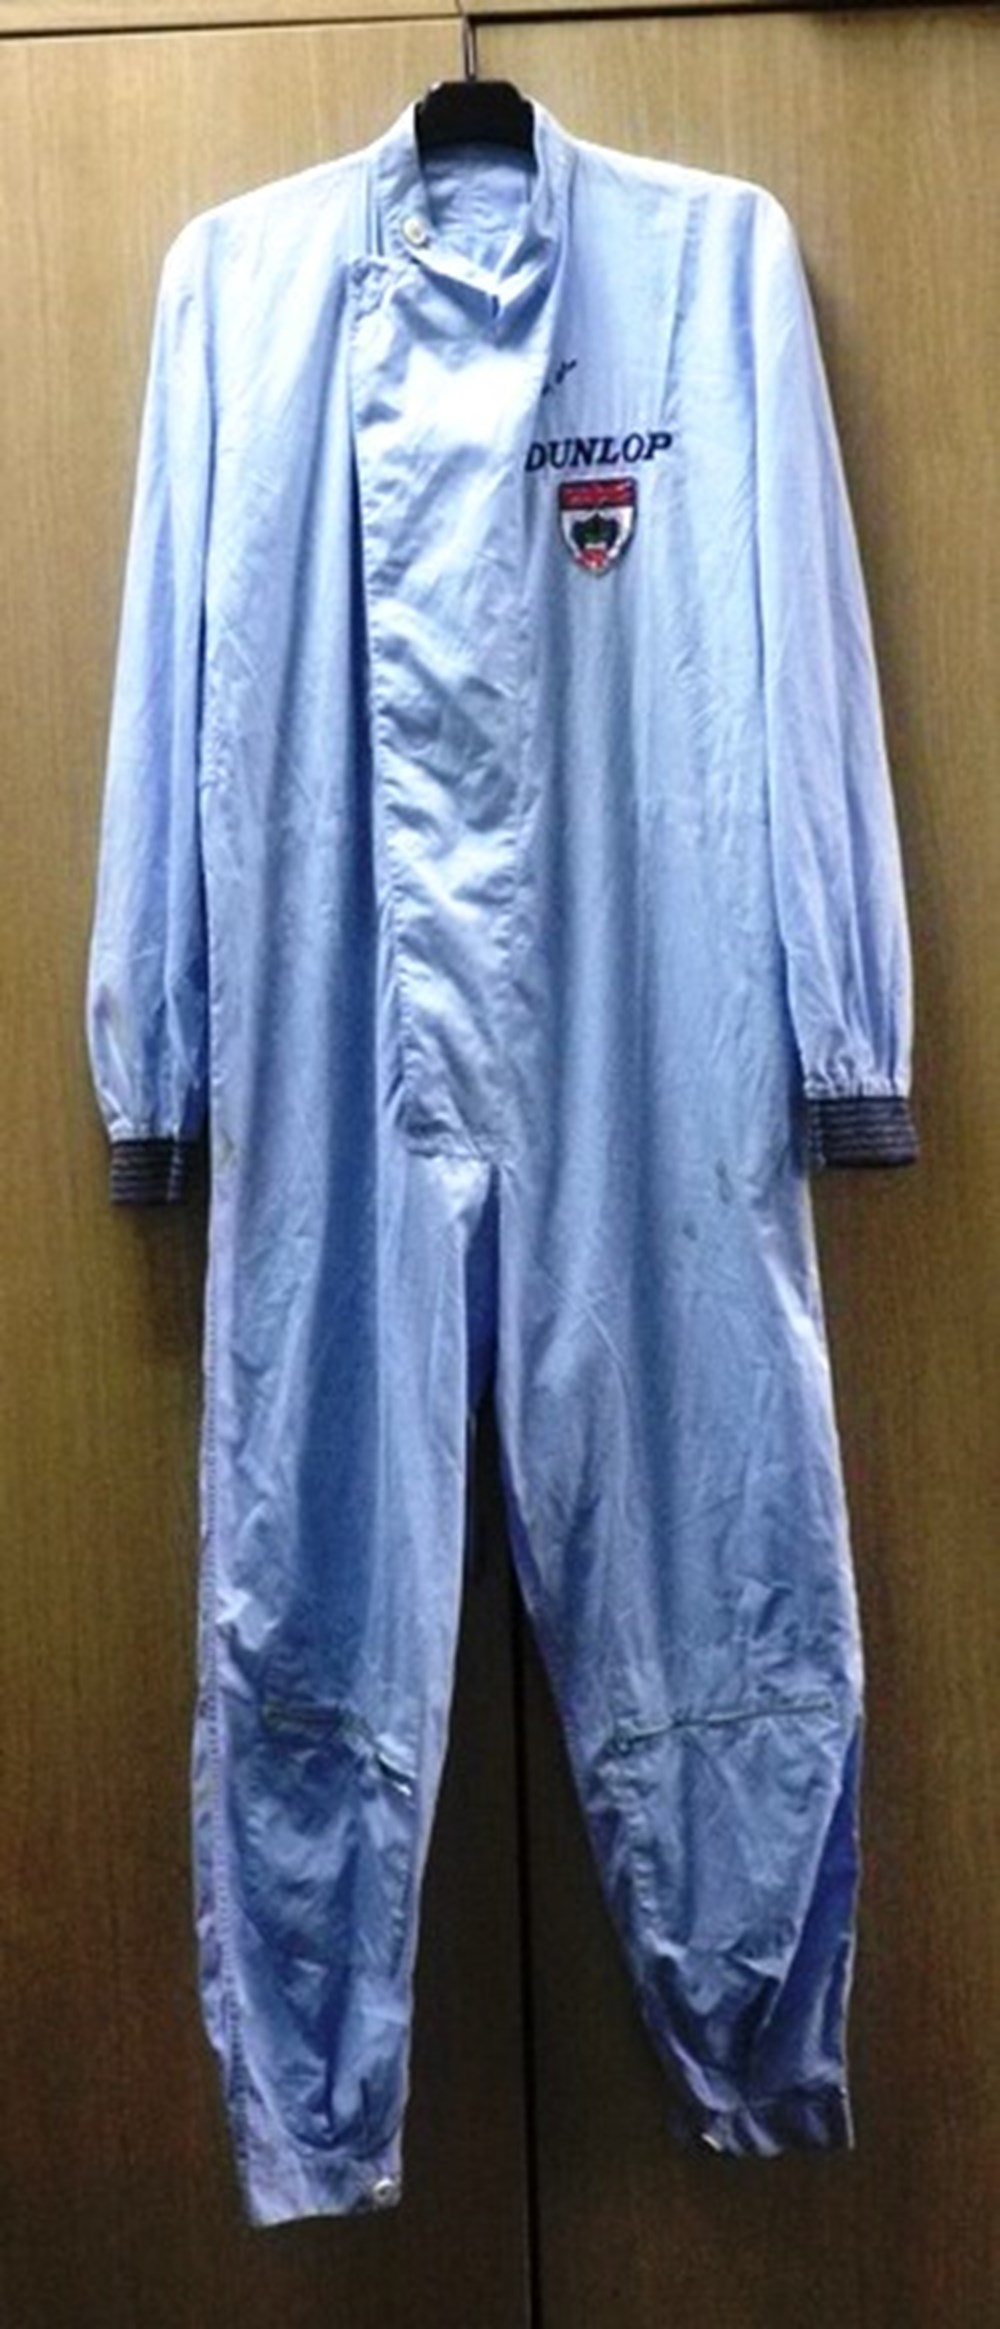 Lot 139 - Stirling Moss driver's suit